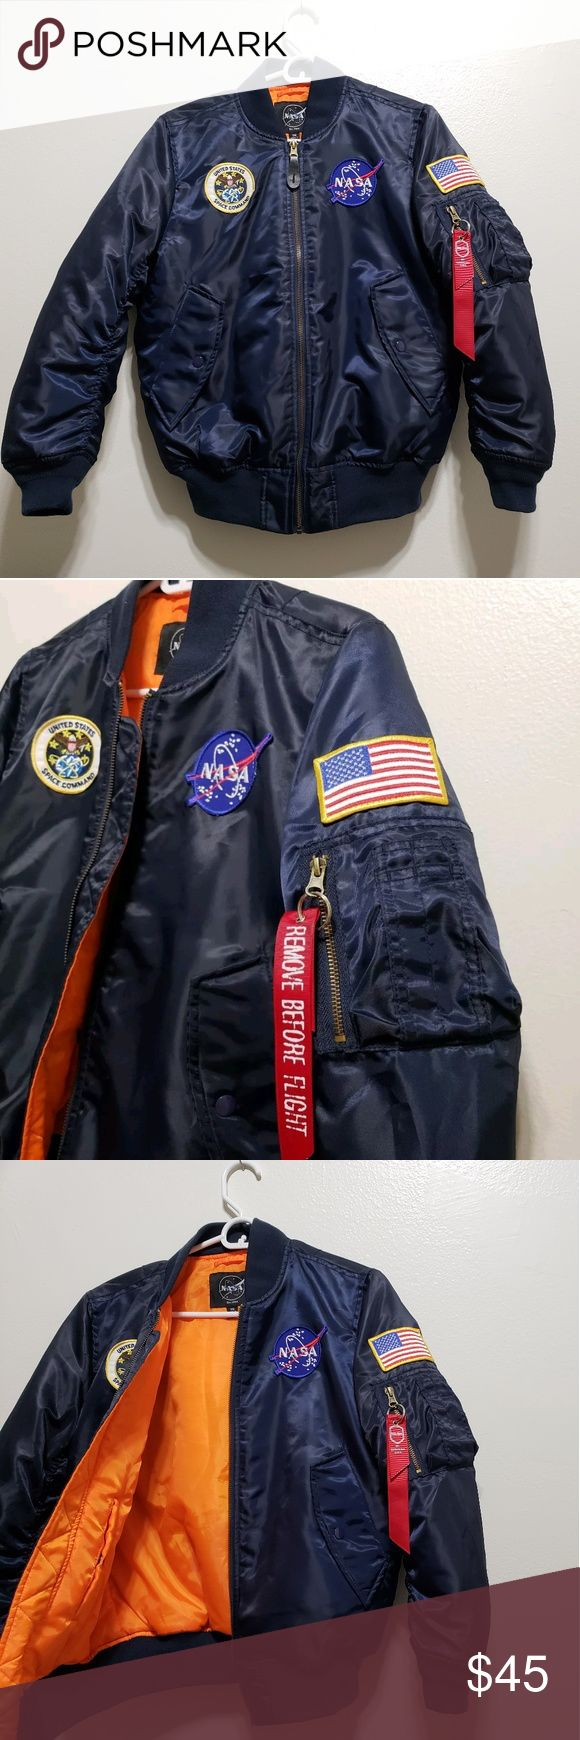 NASA MA1 Flight / Bomber Jacket YM NASA Jacket in used